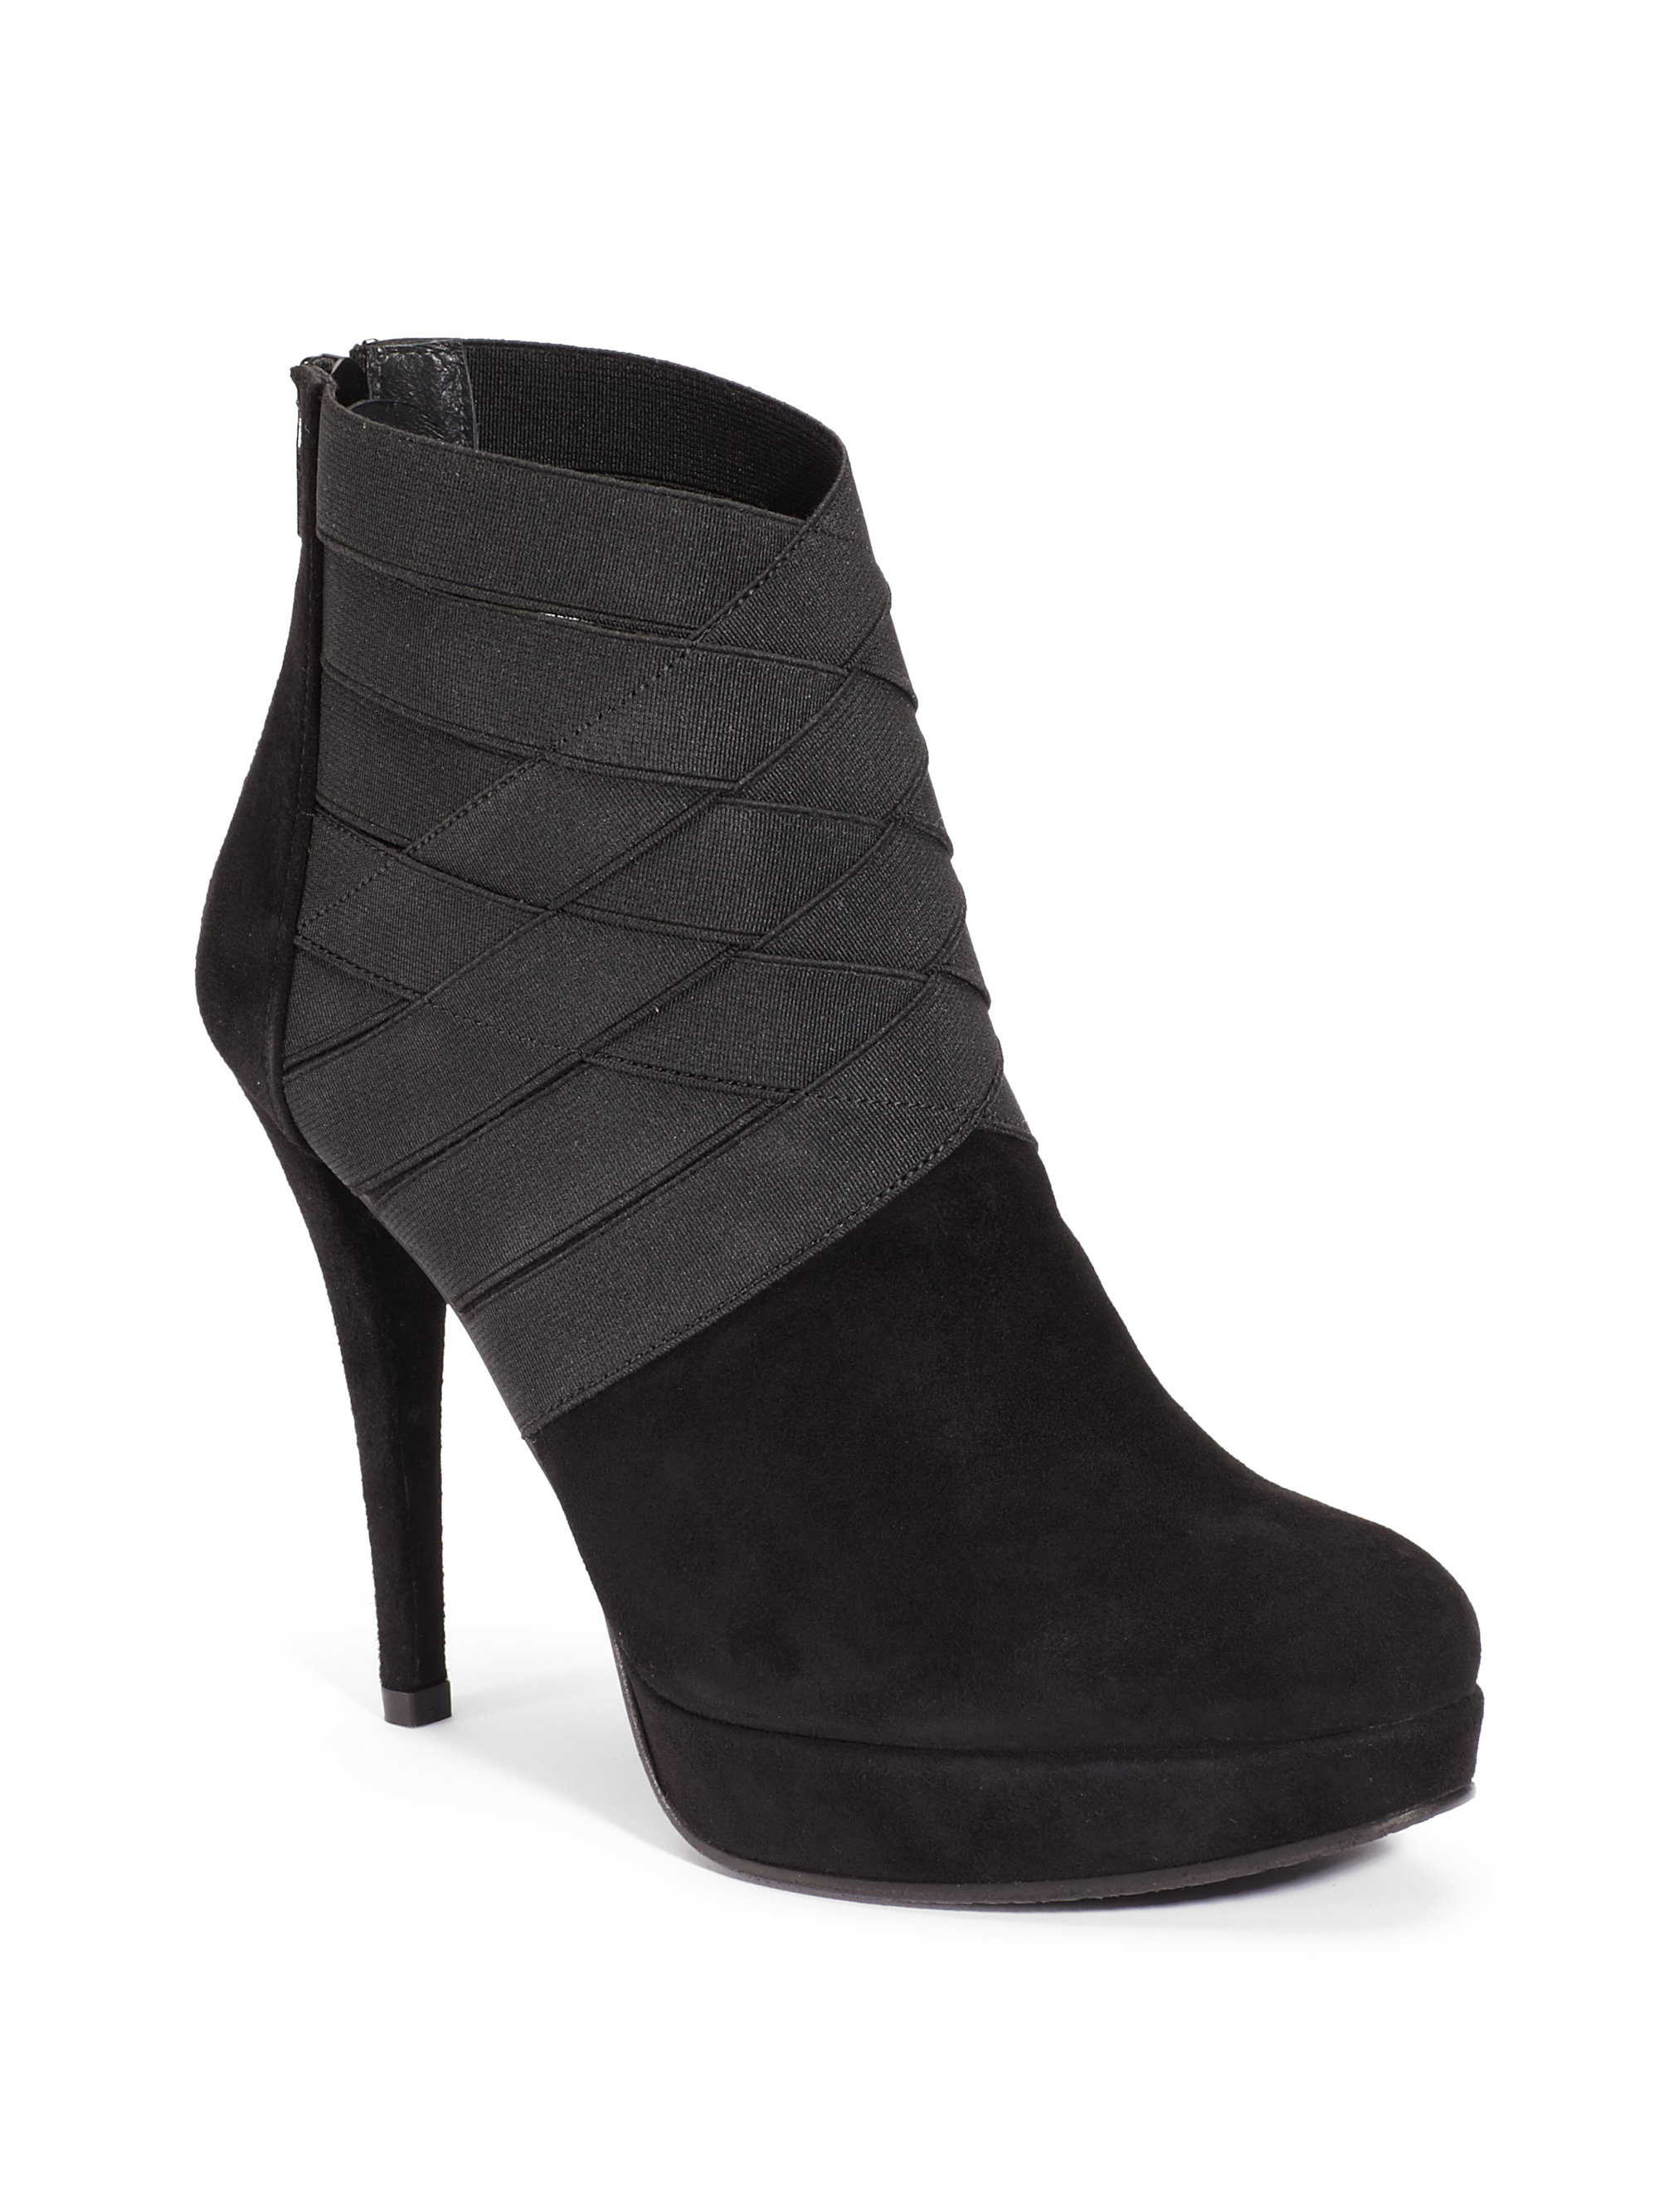 stuart weitzman papoose suede ankle boots in black lyst